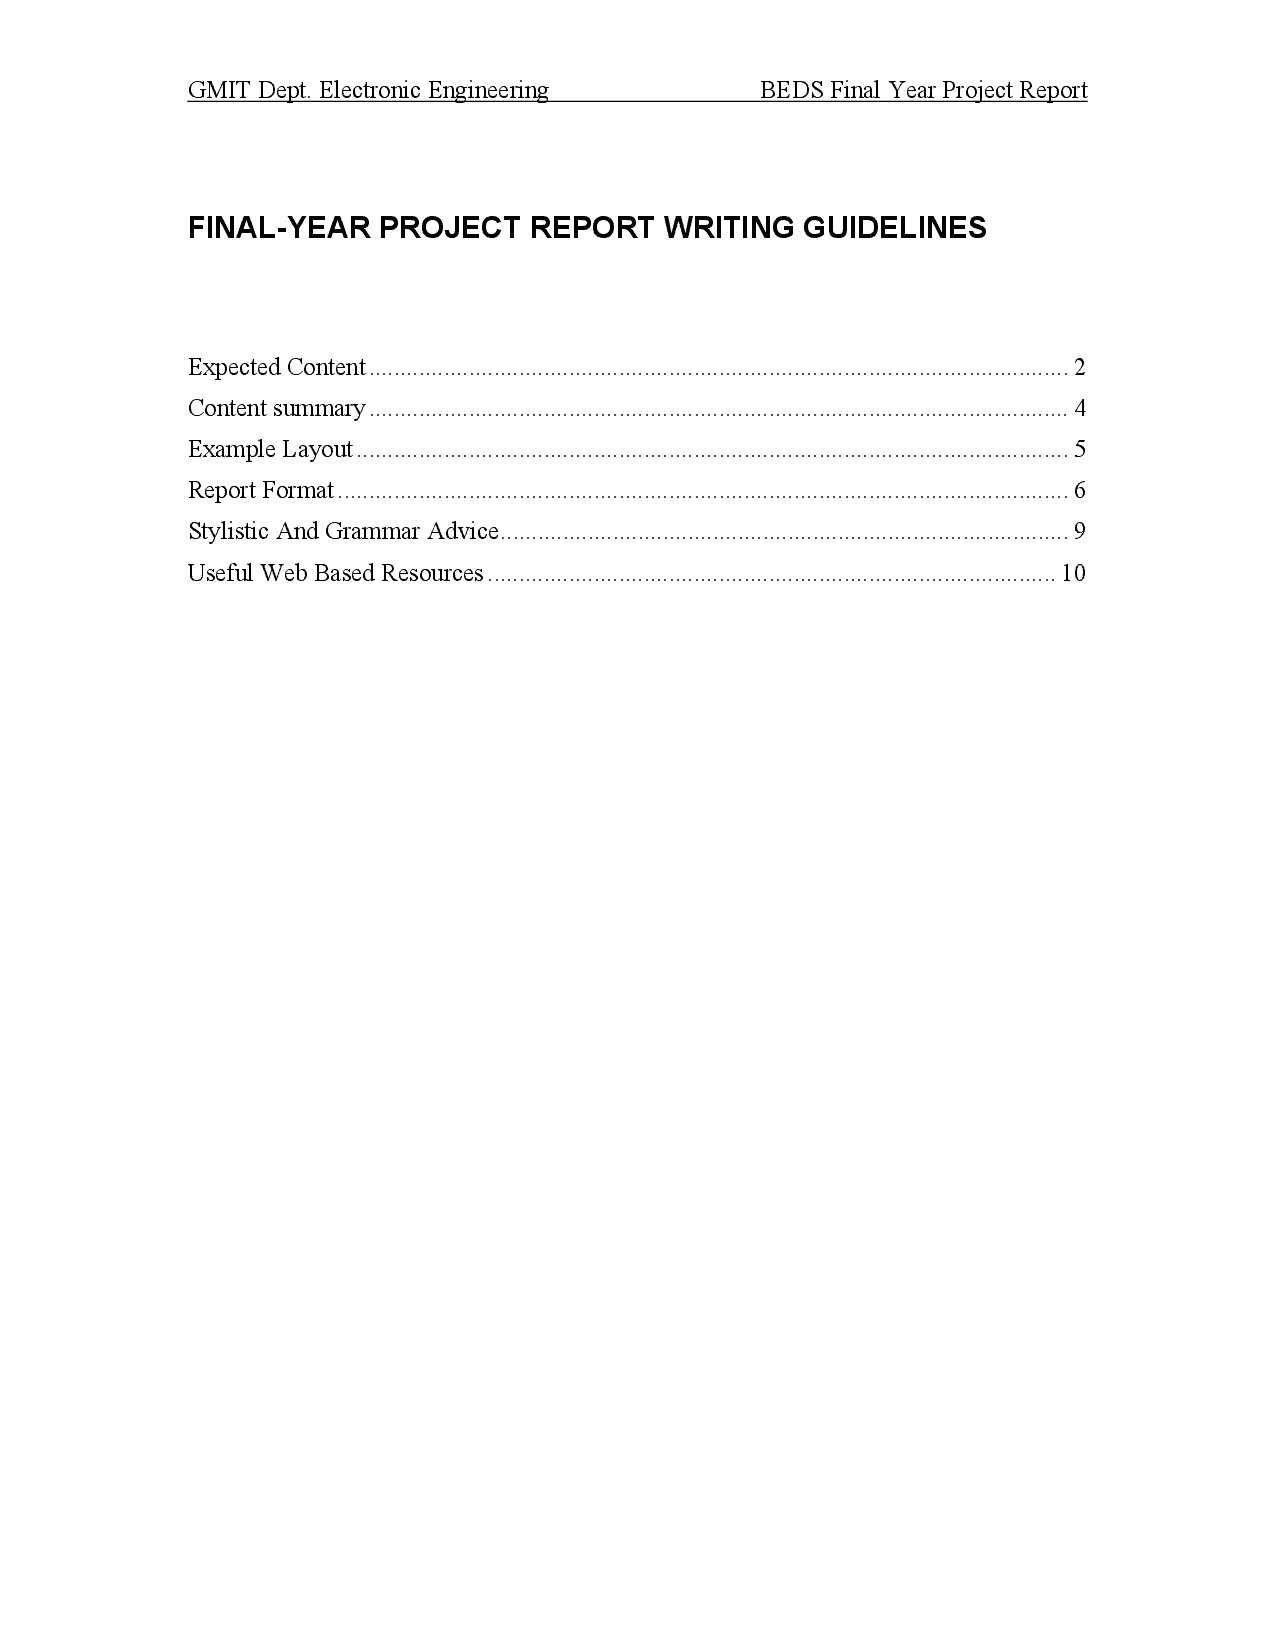 Project Report Template Ieee Standard  Docsity For Skeleton Book Report Template